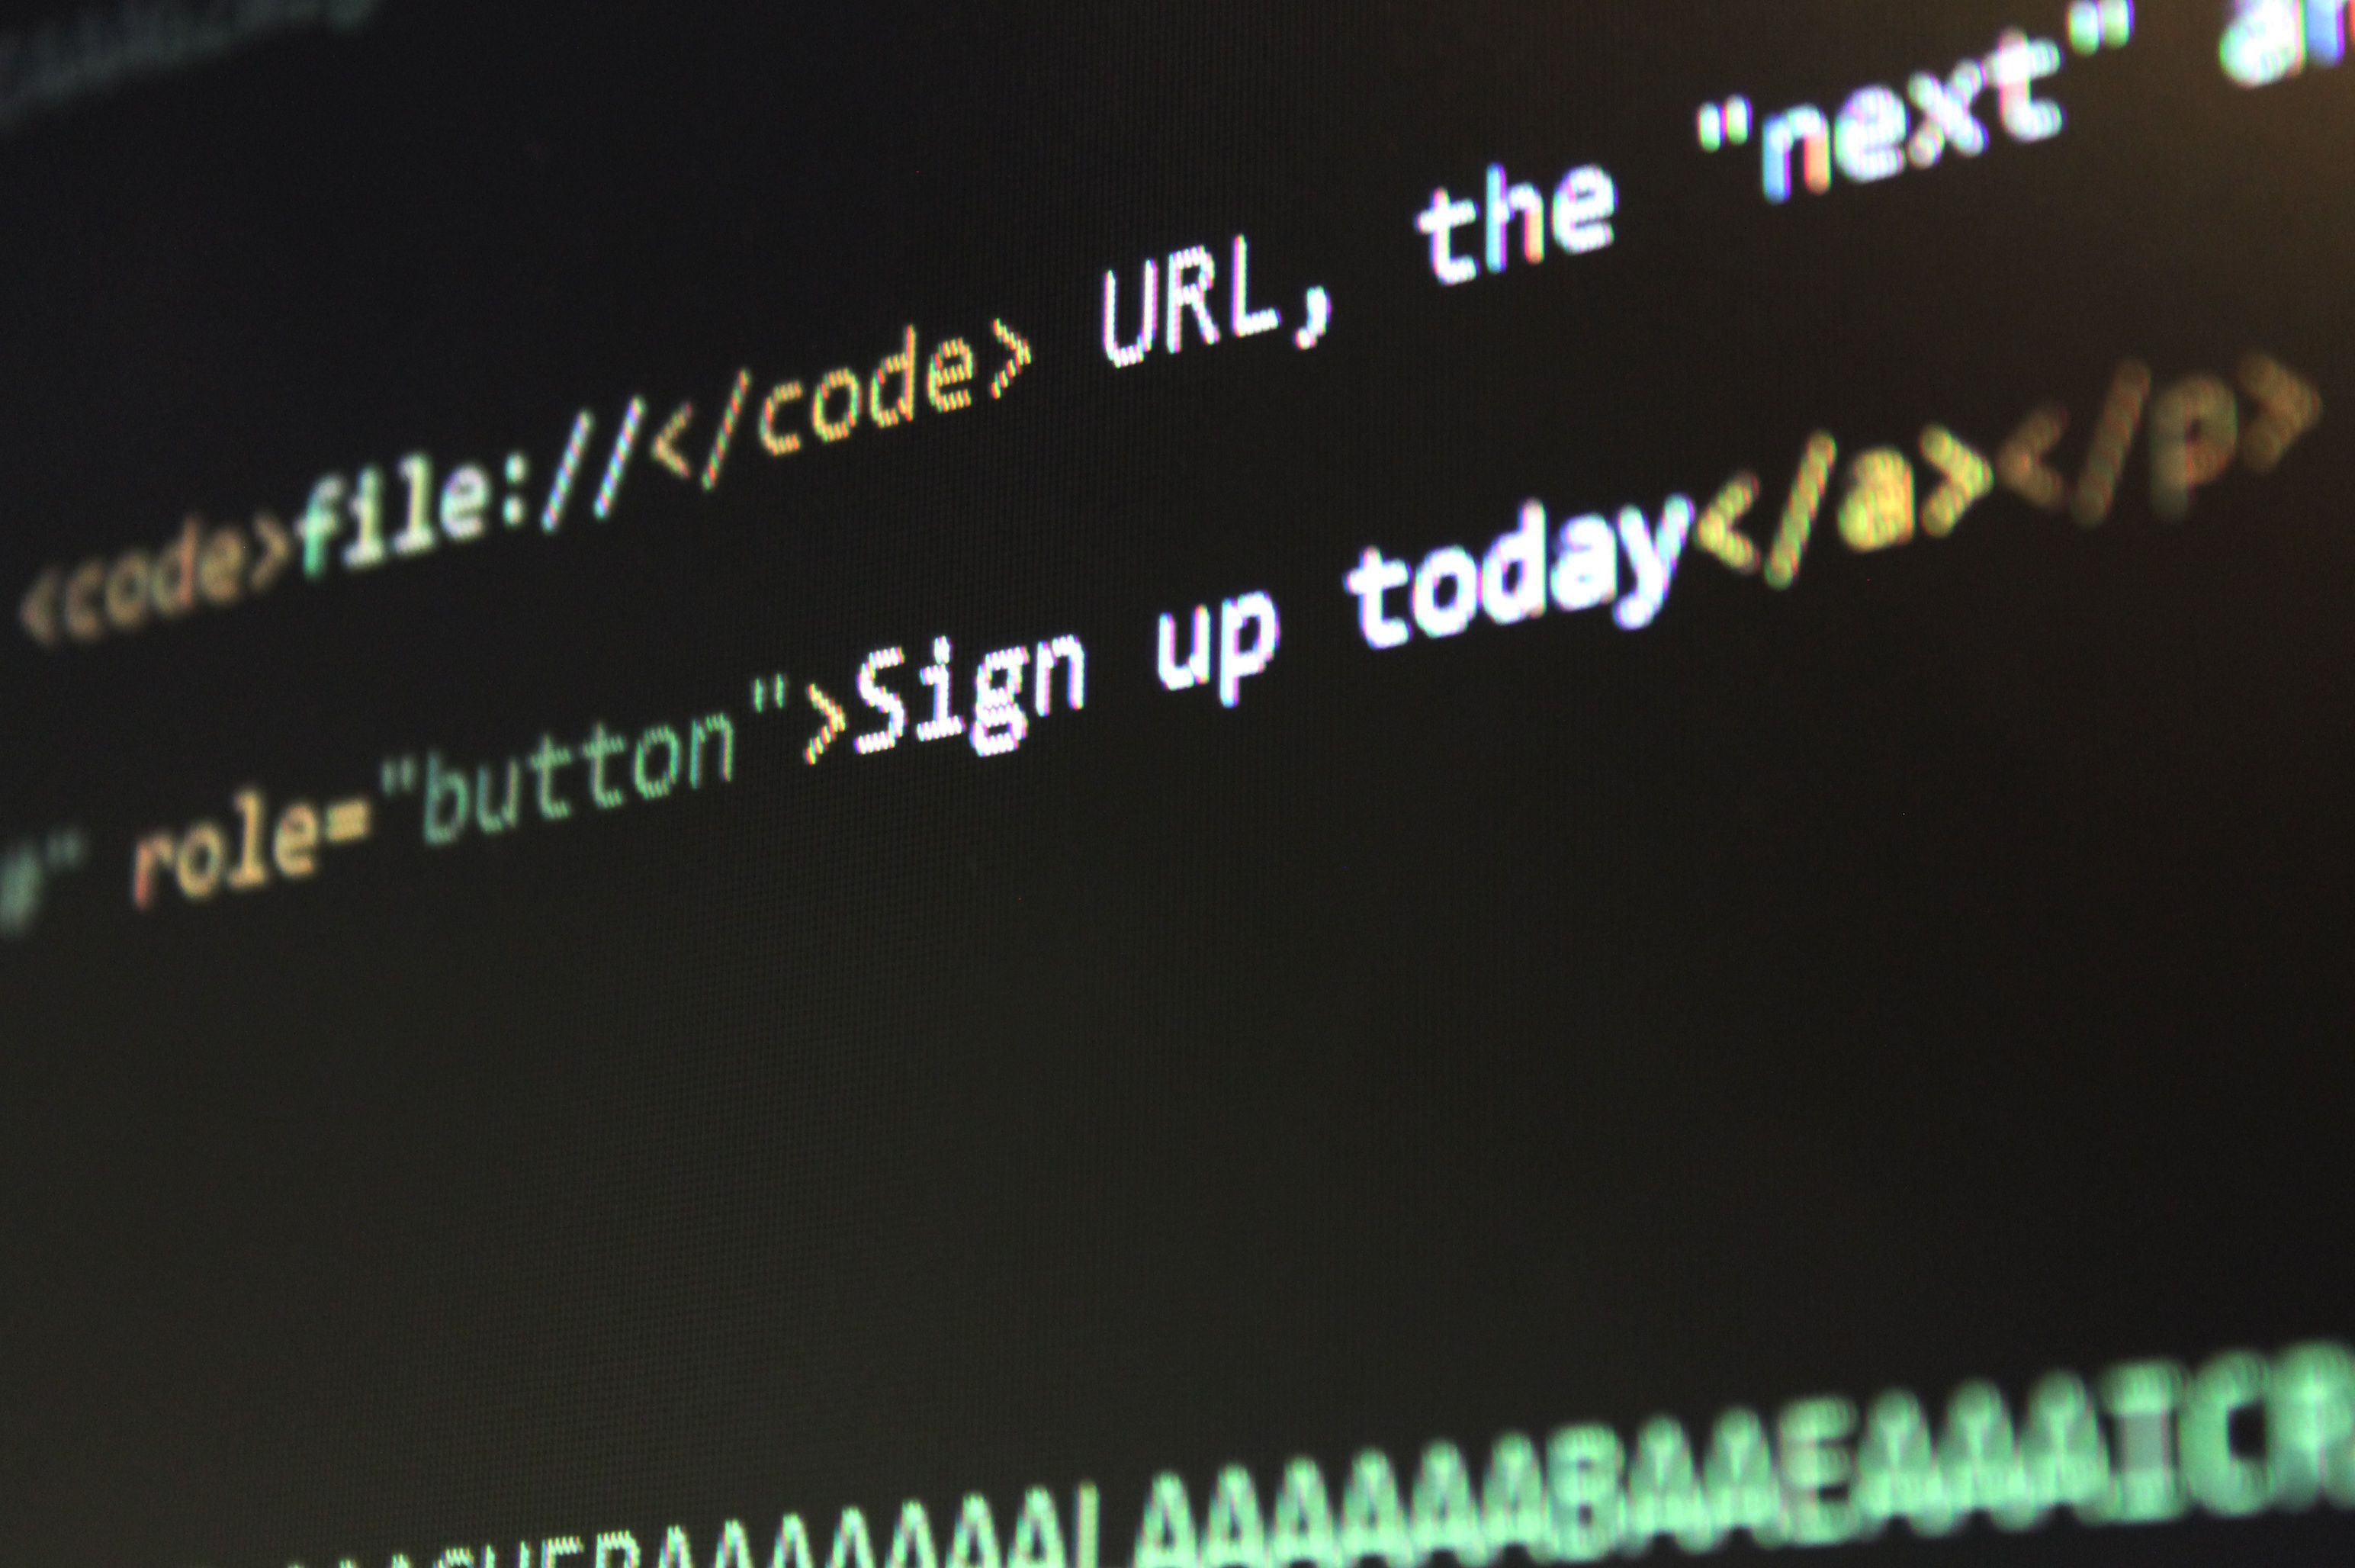 Is Your Website Accessible? Quick Guide to WCAG 2.0 Accessibility Standards